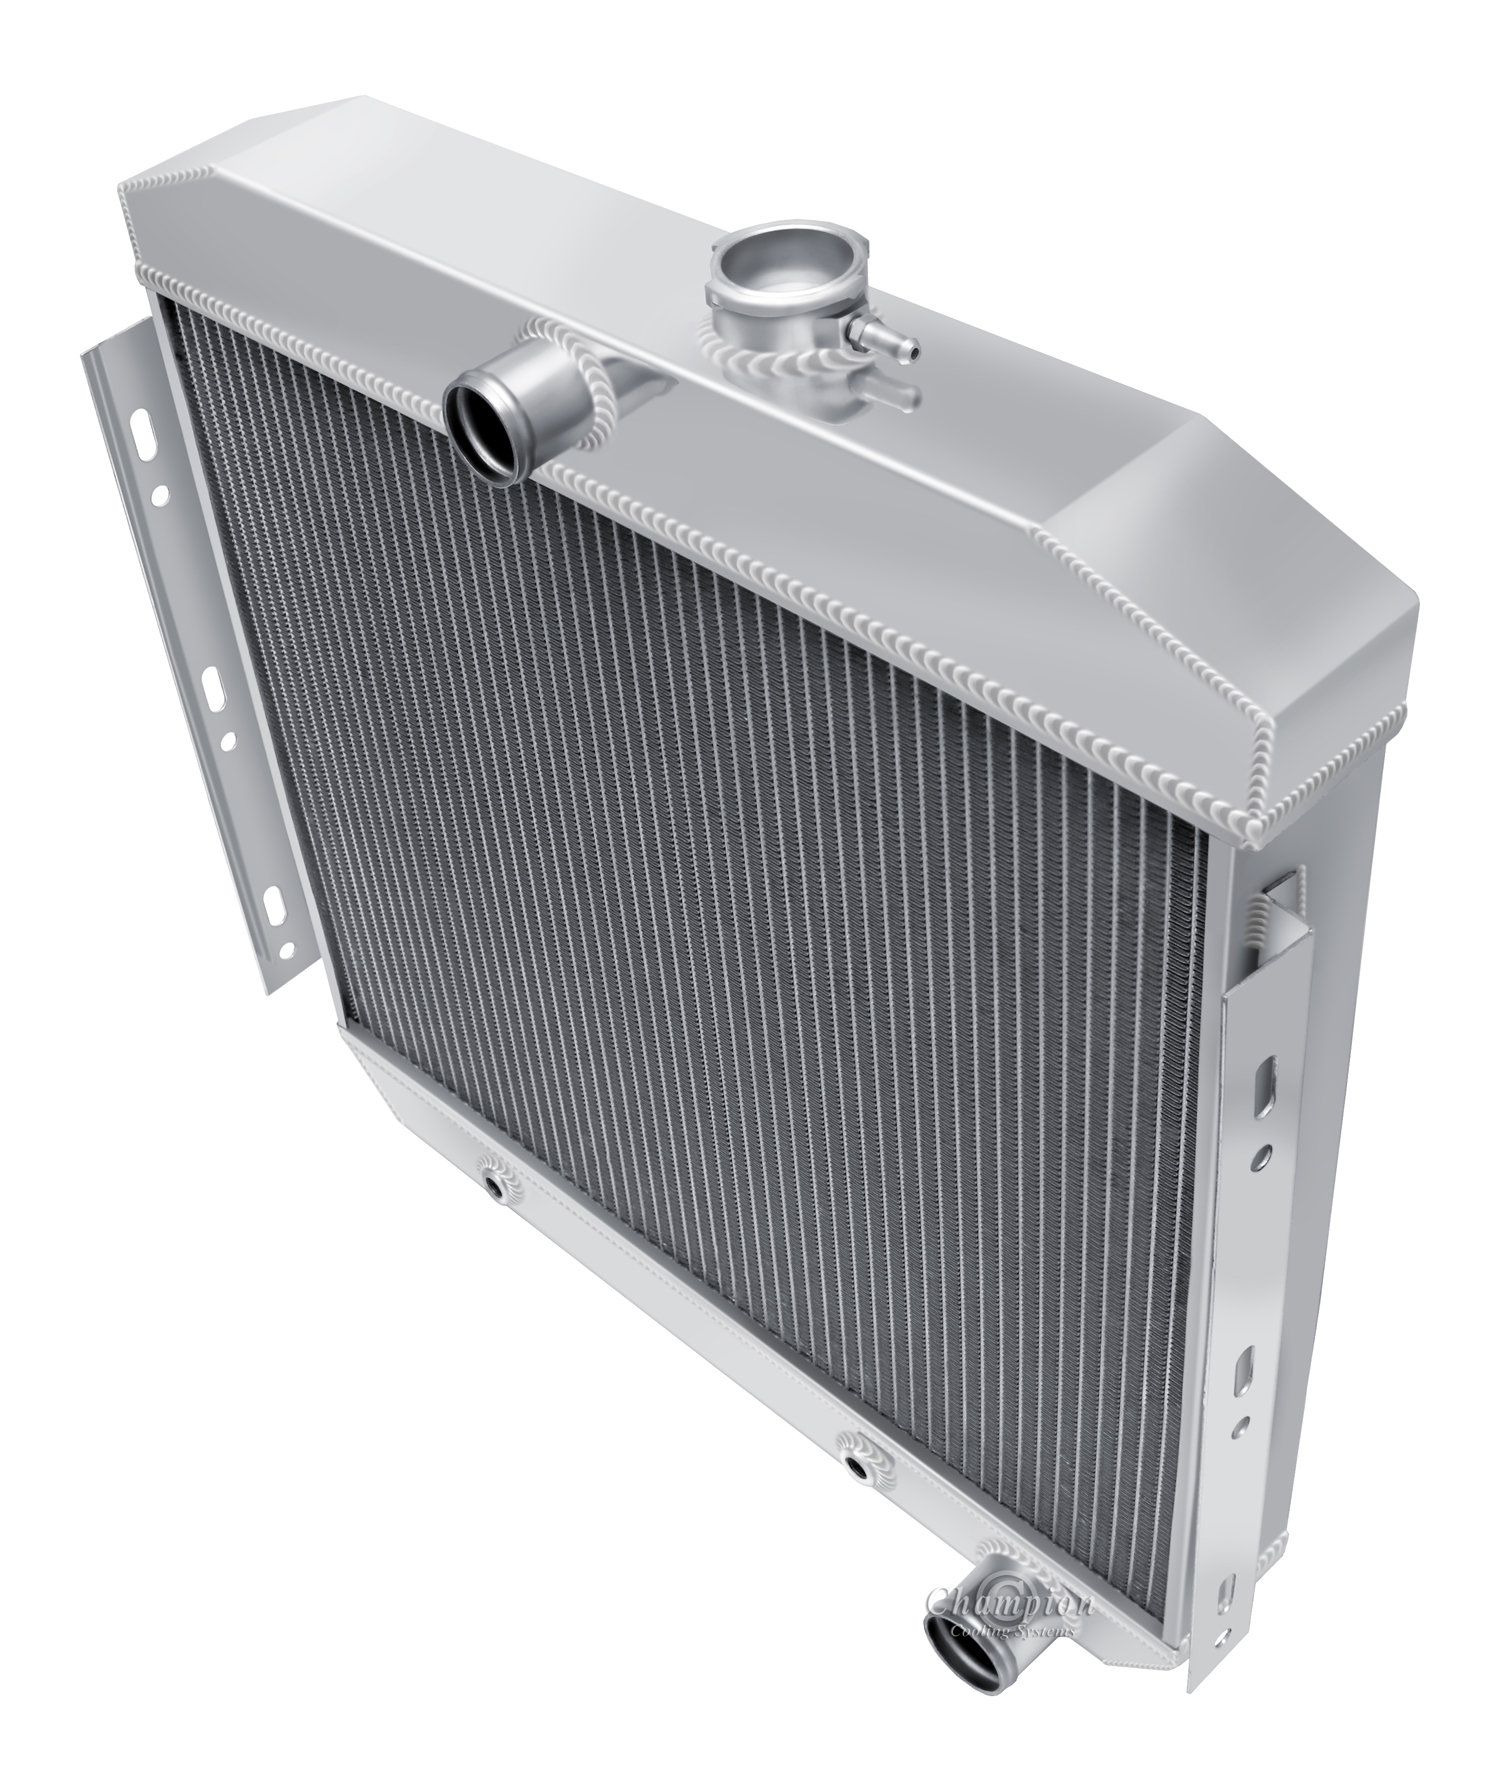 """3 Row Champion Radiator 16/"""" Fan For 1955-1956 Chevy Bel Air"""